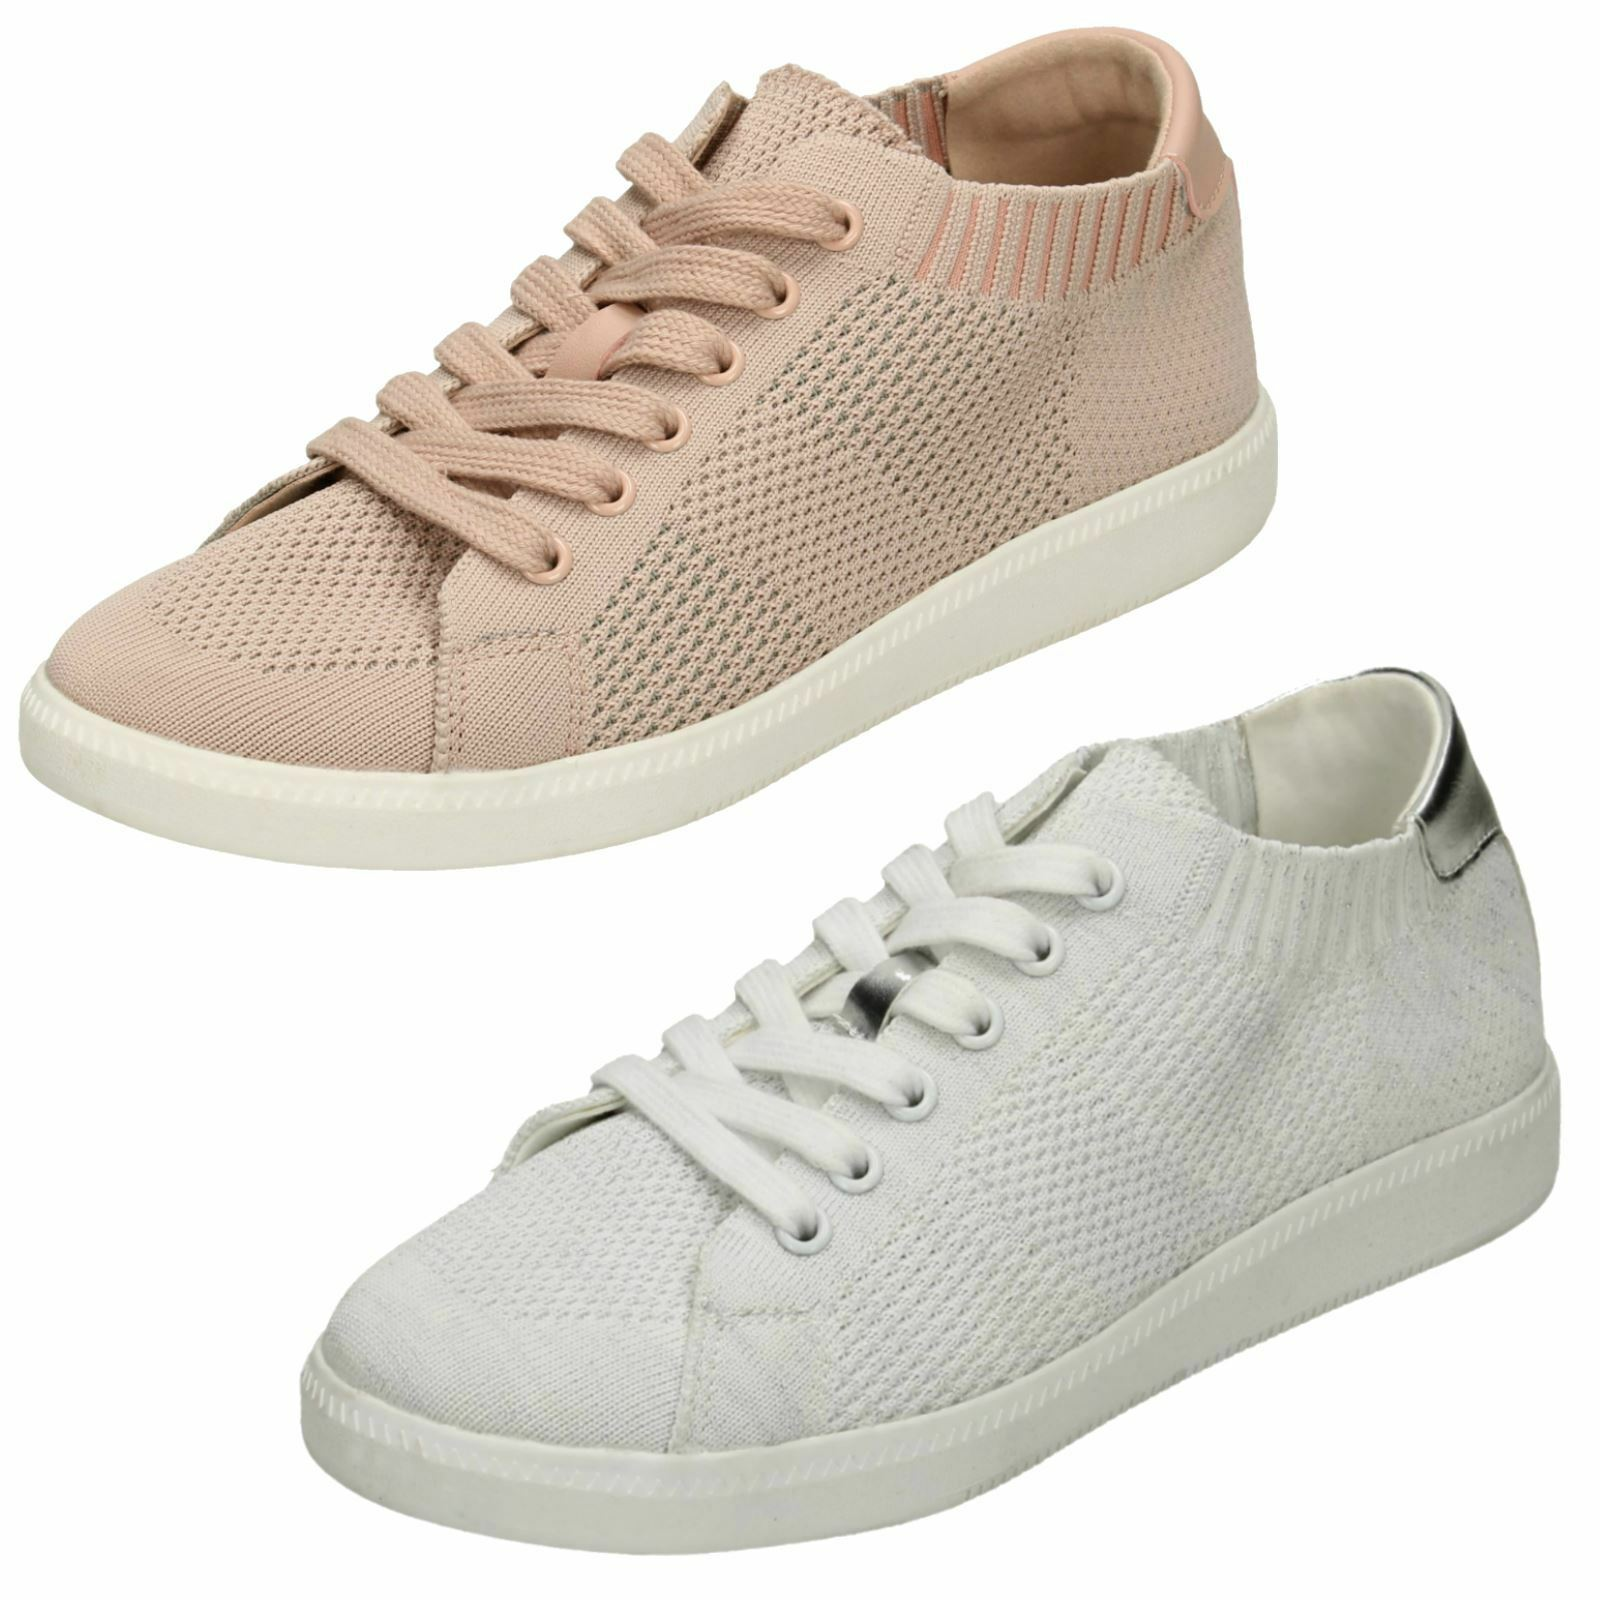 Ladies F7R094 Casual Lace Up Trainer By Reflex